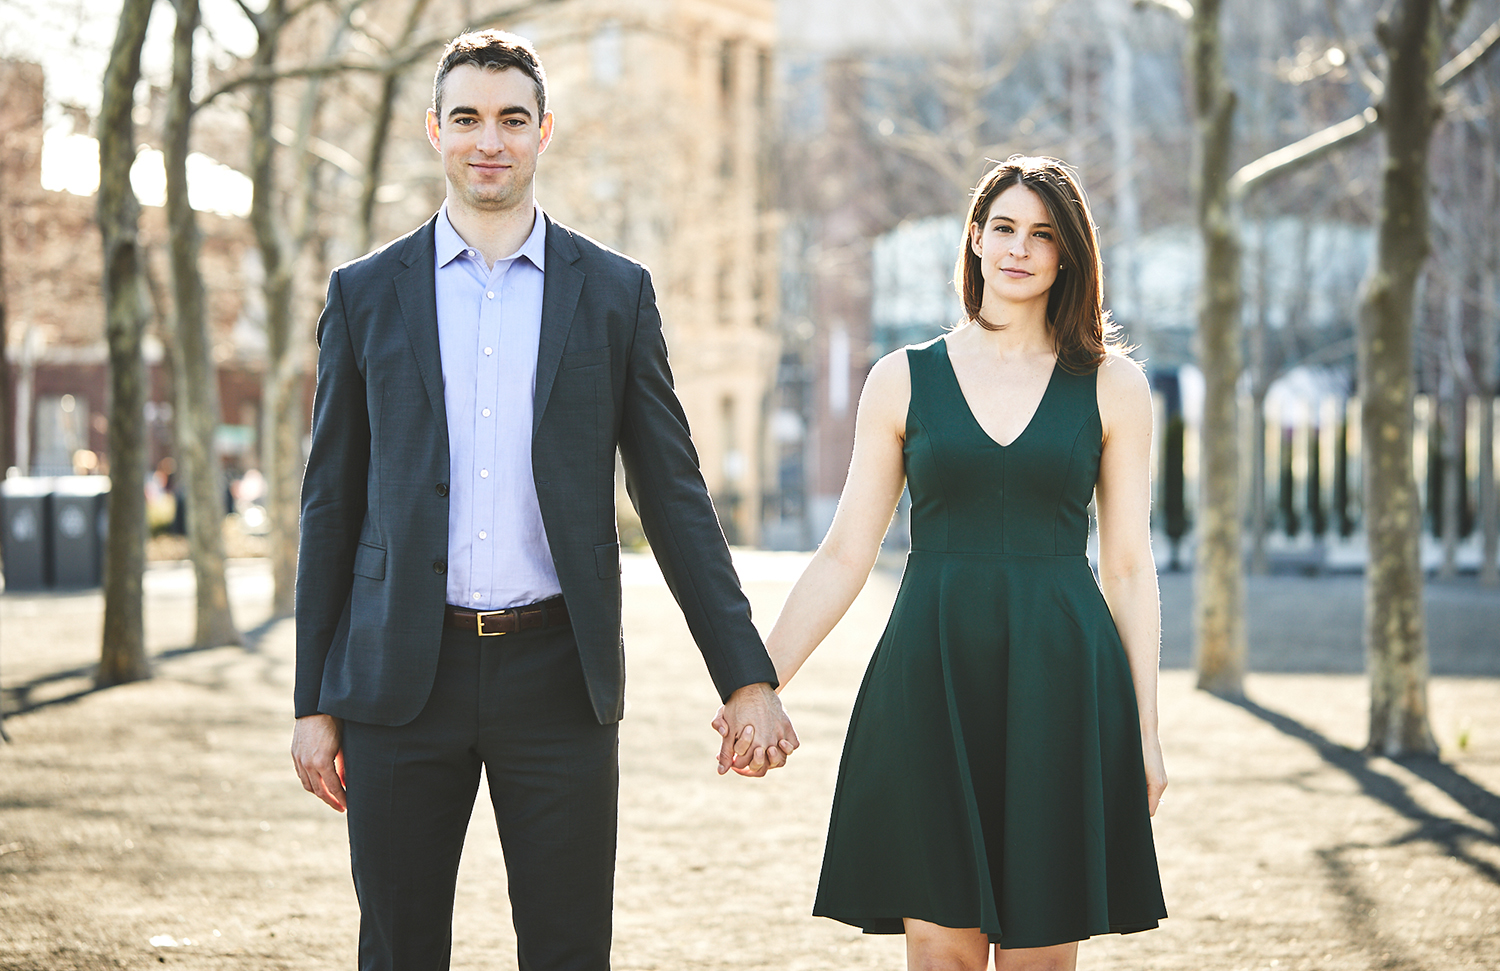 180422_StevensInstitureofTechnologyEngagementPhotography_HobokenEngagement Photography_By_BriJohnsonWeddings_0009.jpg